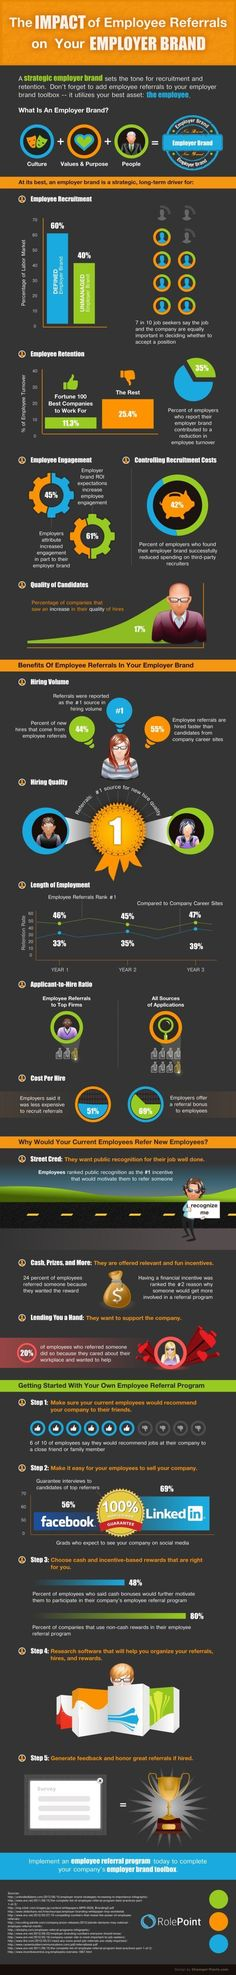 Management : How Employee Referrals Impact Your Employer Brand [INFOGRAPHIC]